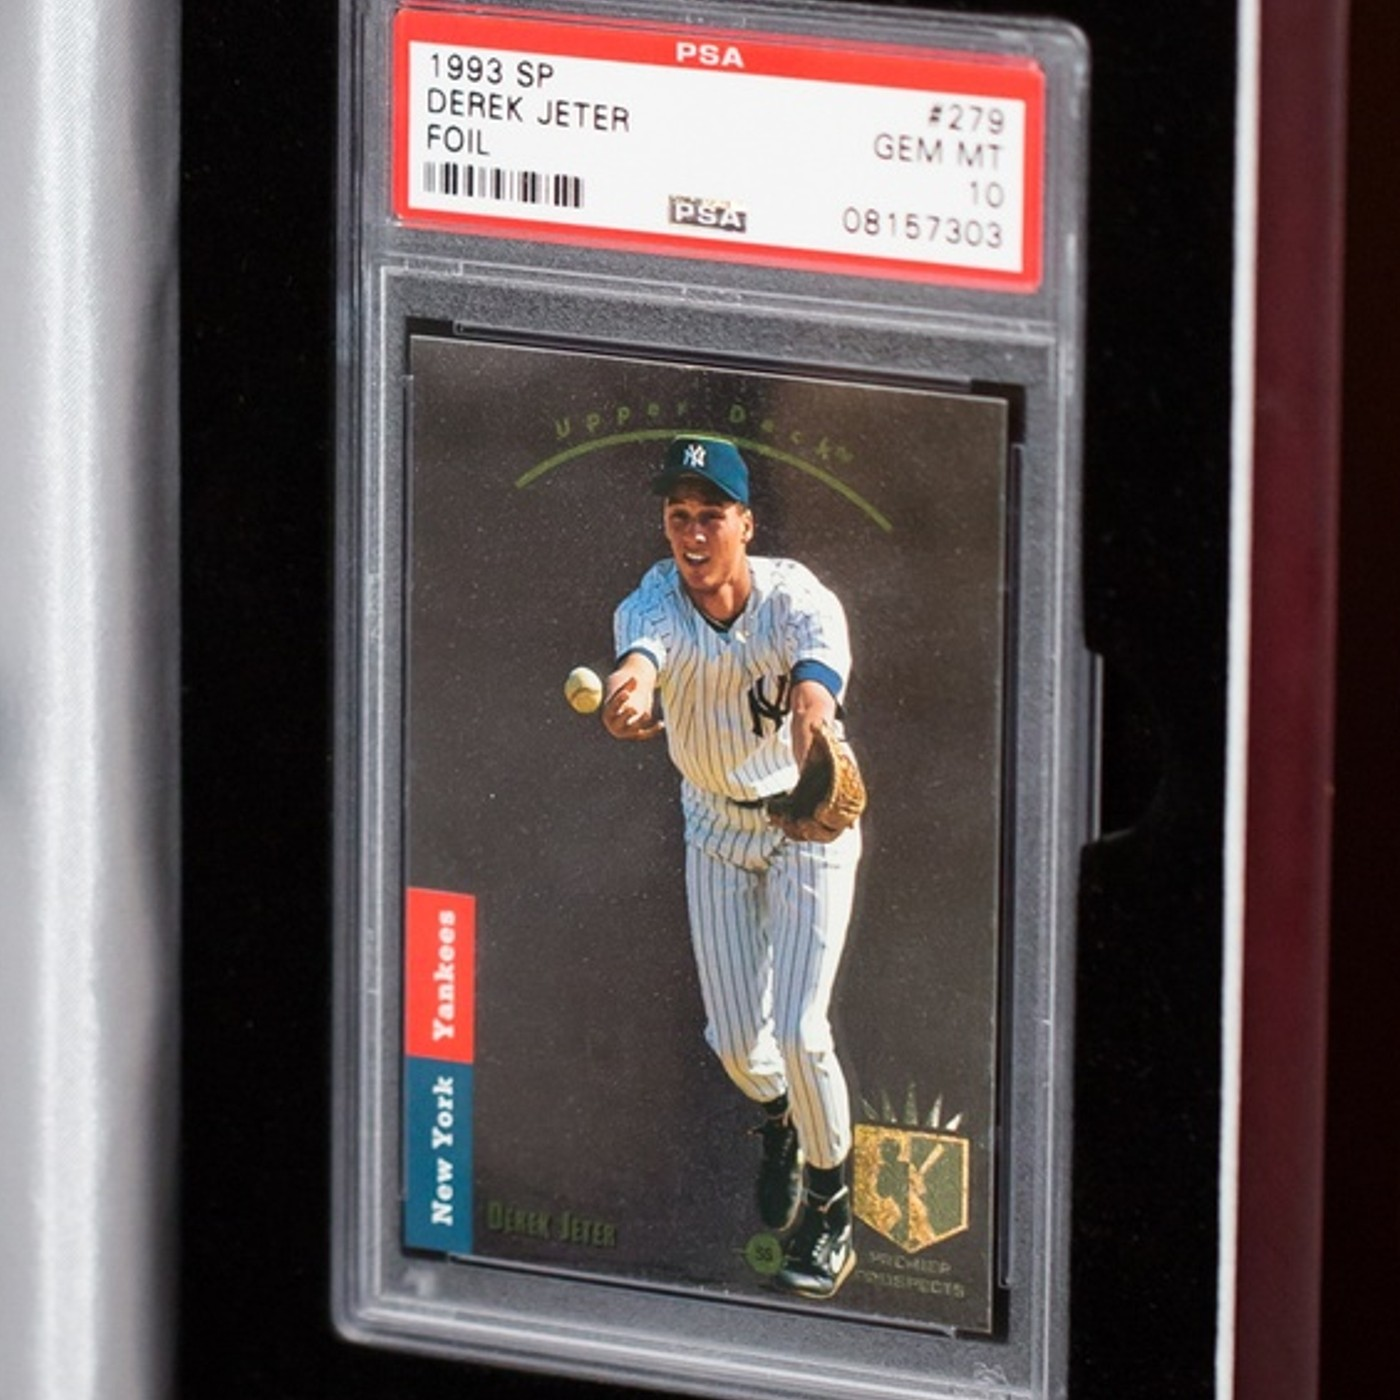 Derek Jeter 1993 Sp Foil Psa 10 Gem Mint Collectionzz